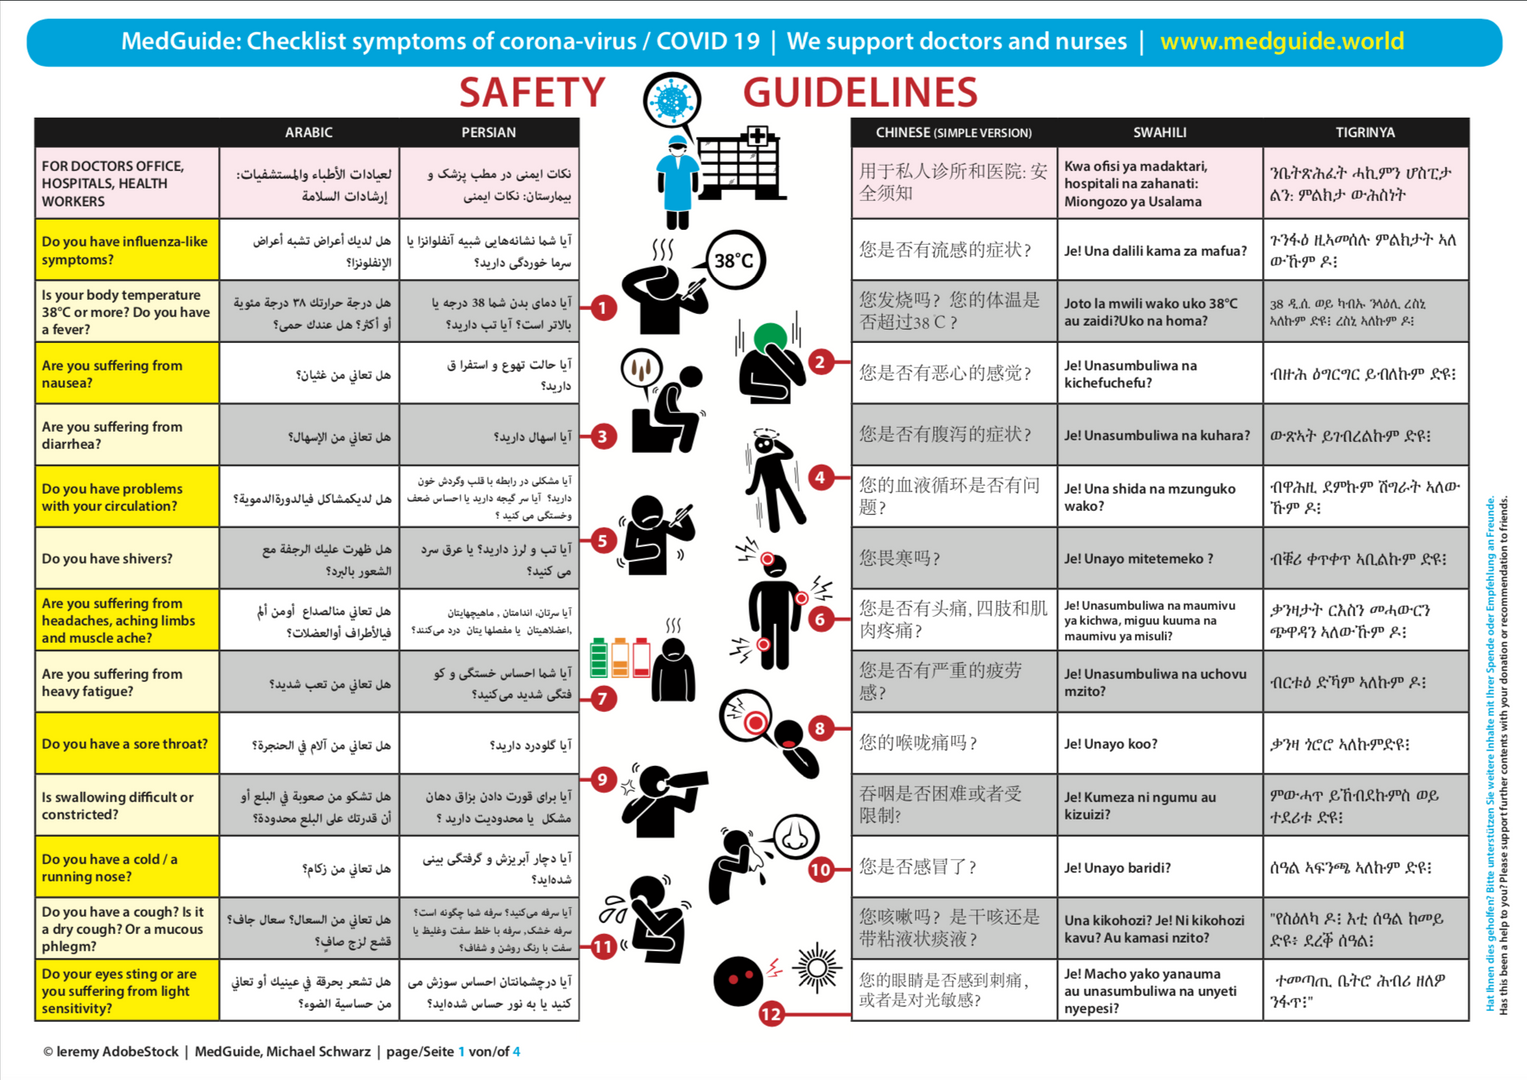 COVID-19 Safety Guidelines